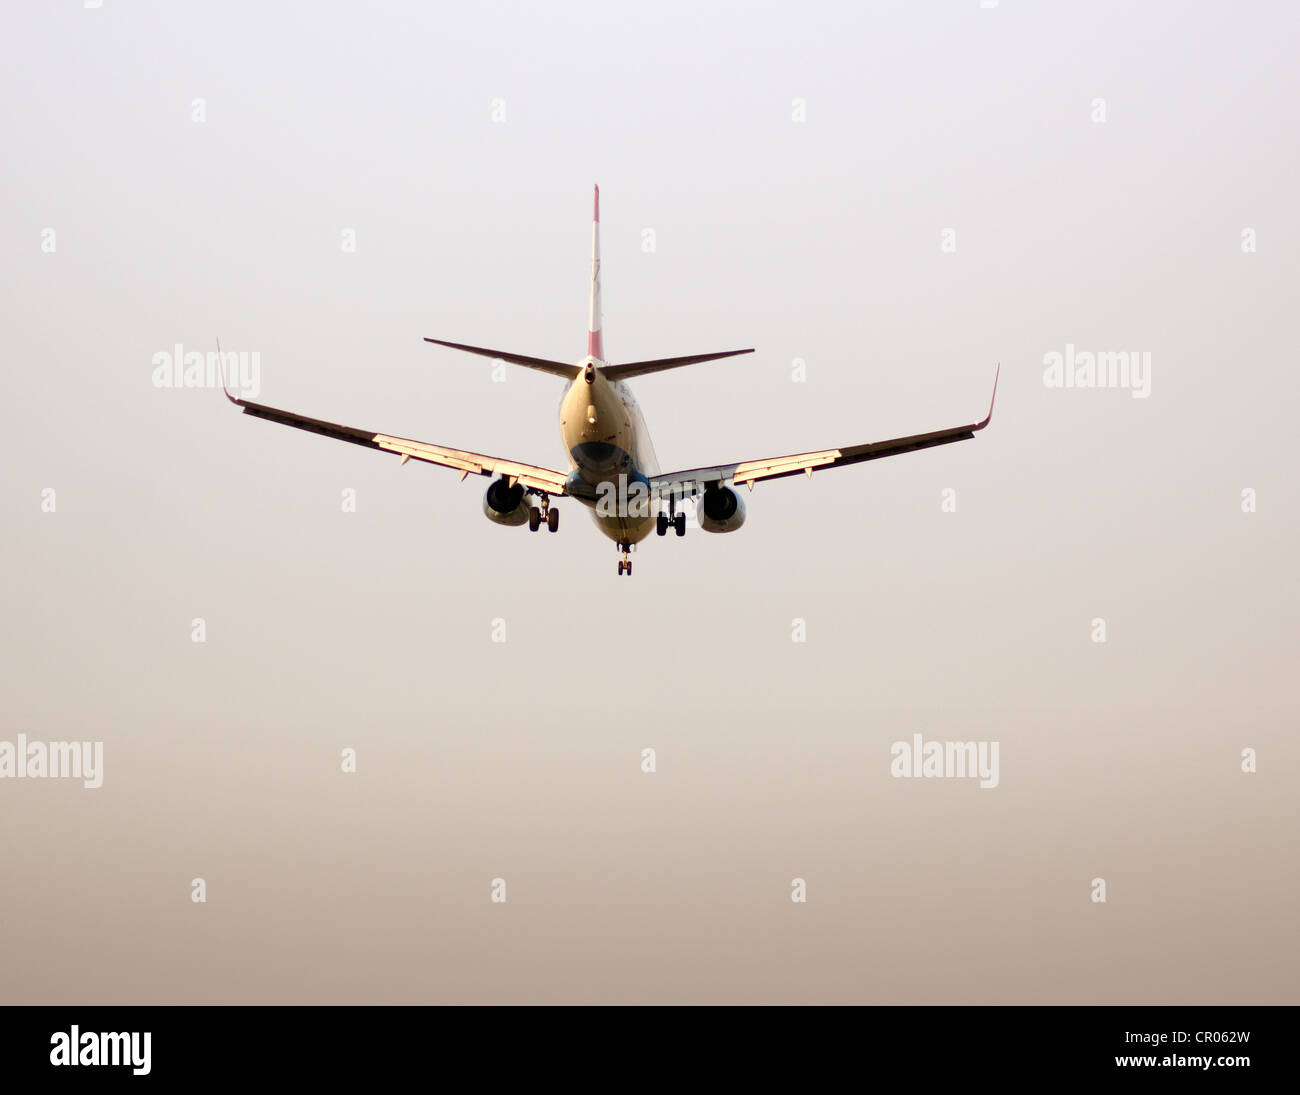 Twin engine jet plane on landing approach, Frankfurt Airport, Frankfurt am Main, Hesse, Germany, Europe - Stock Image